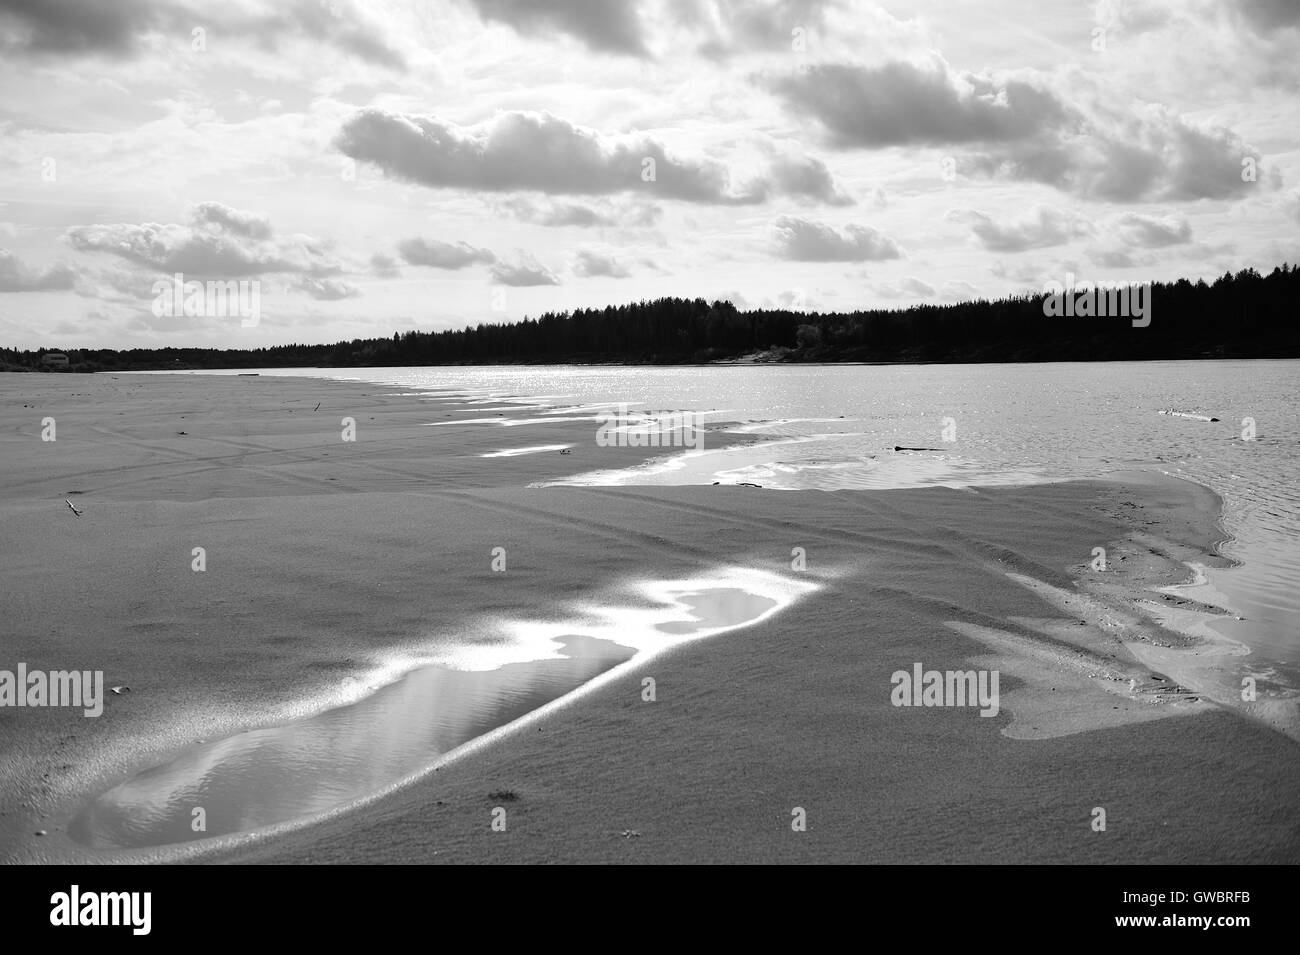 Landscape. River beach in black and white - Stock Image